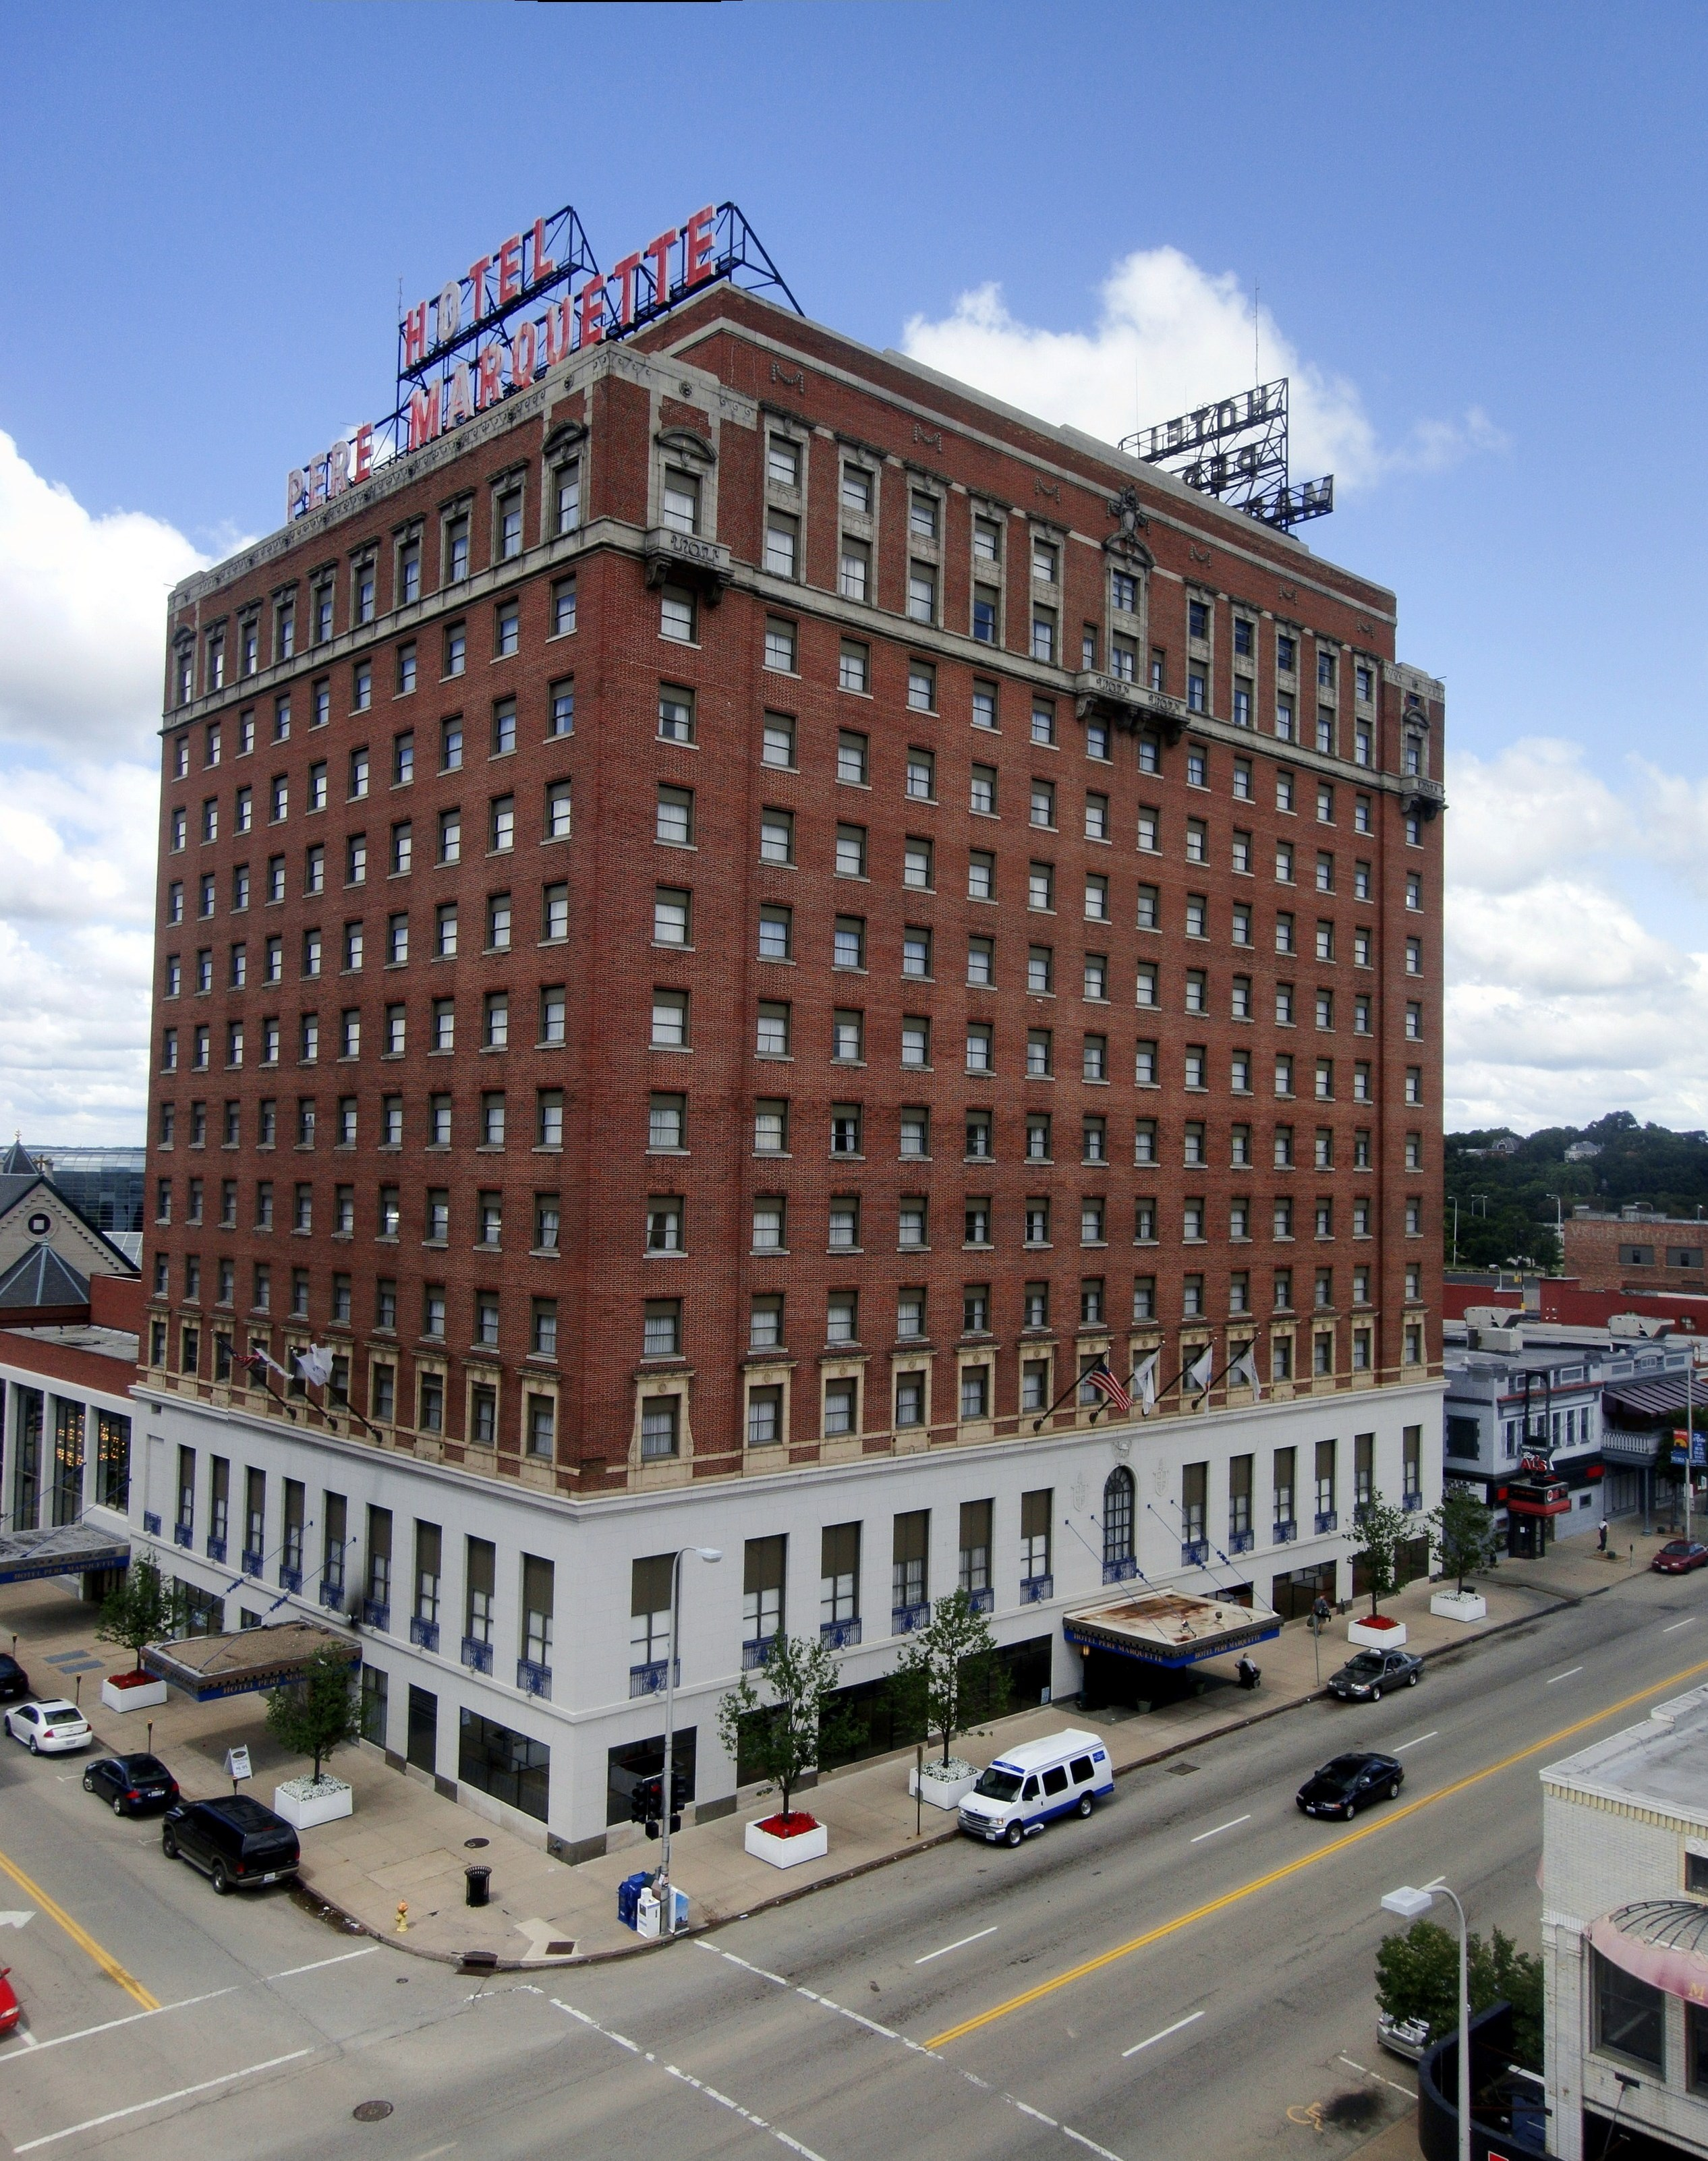 Pere Marquette Hotel New Orleans